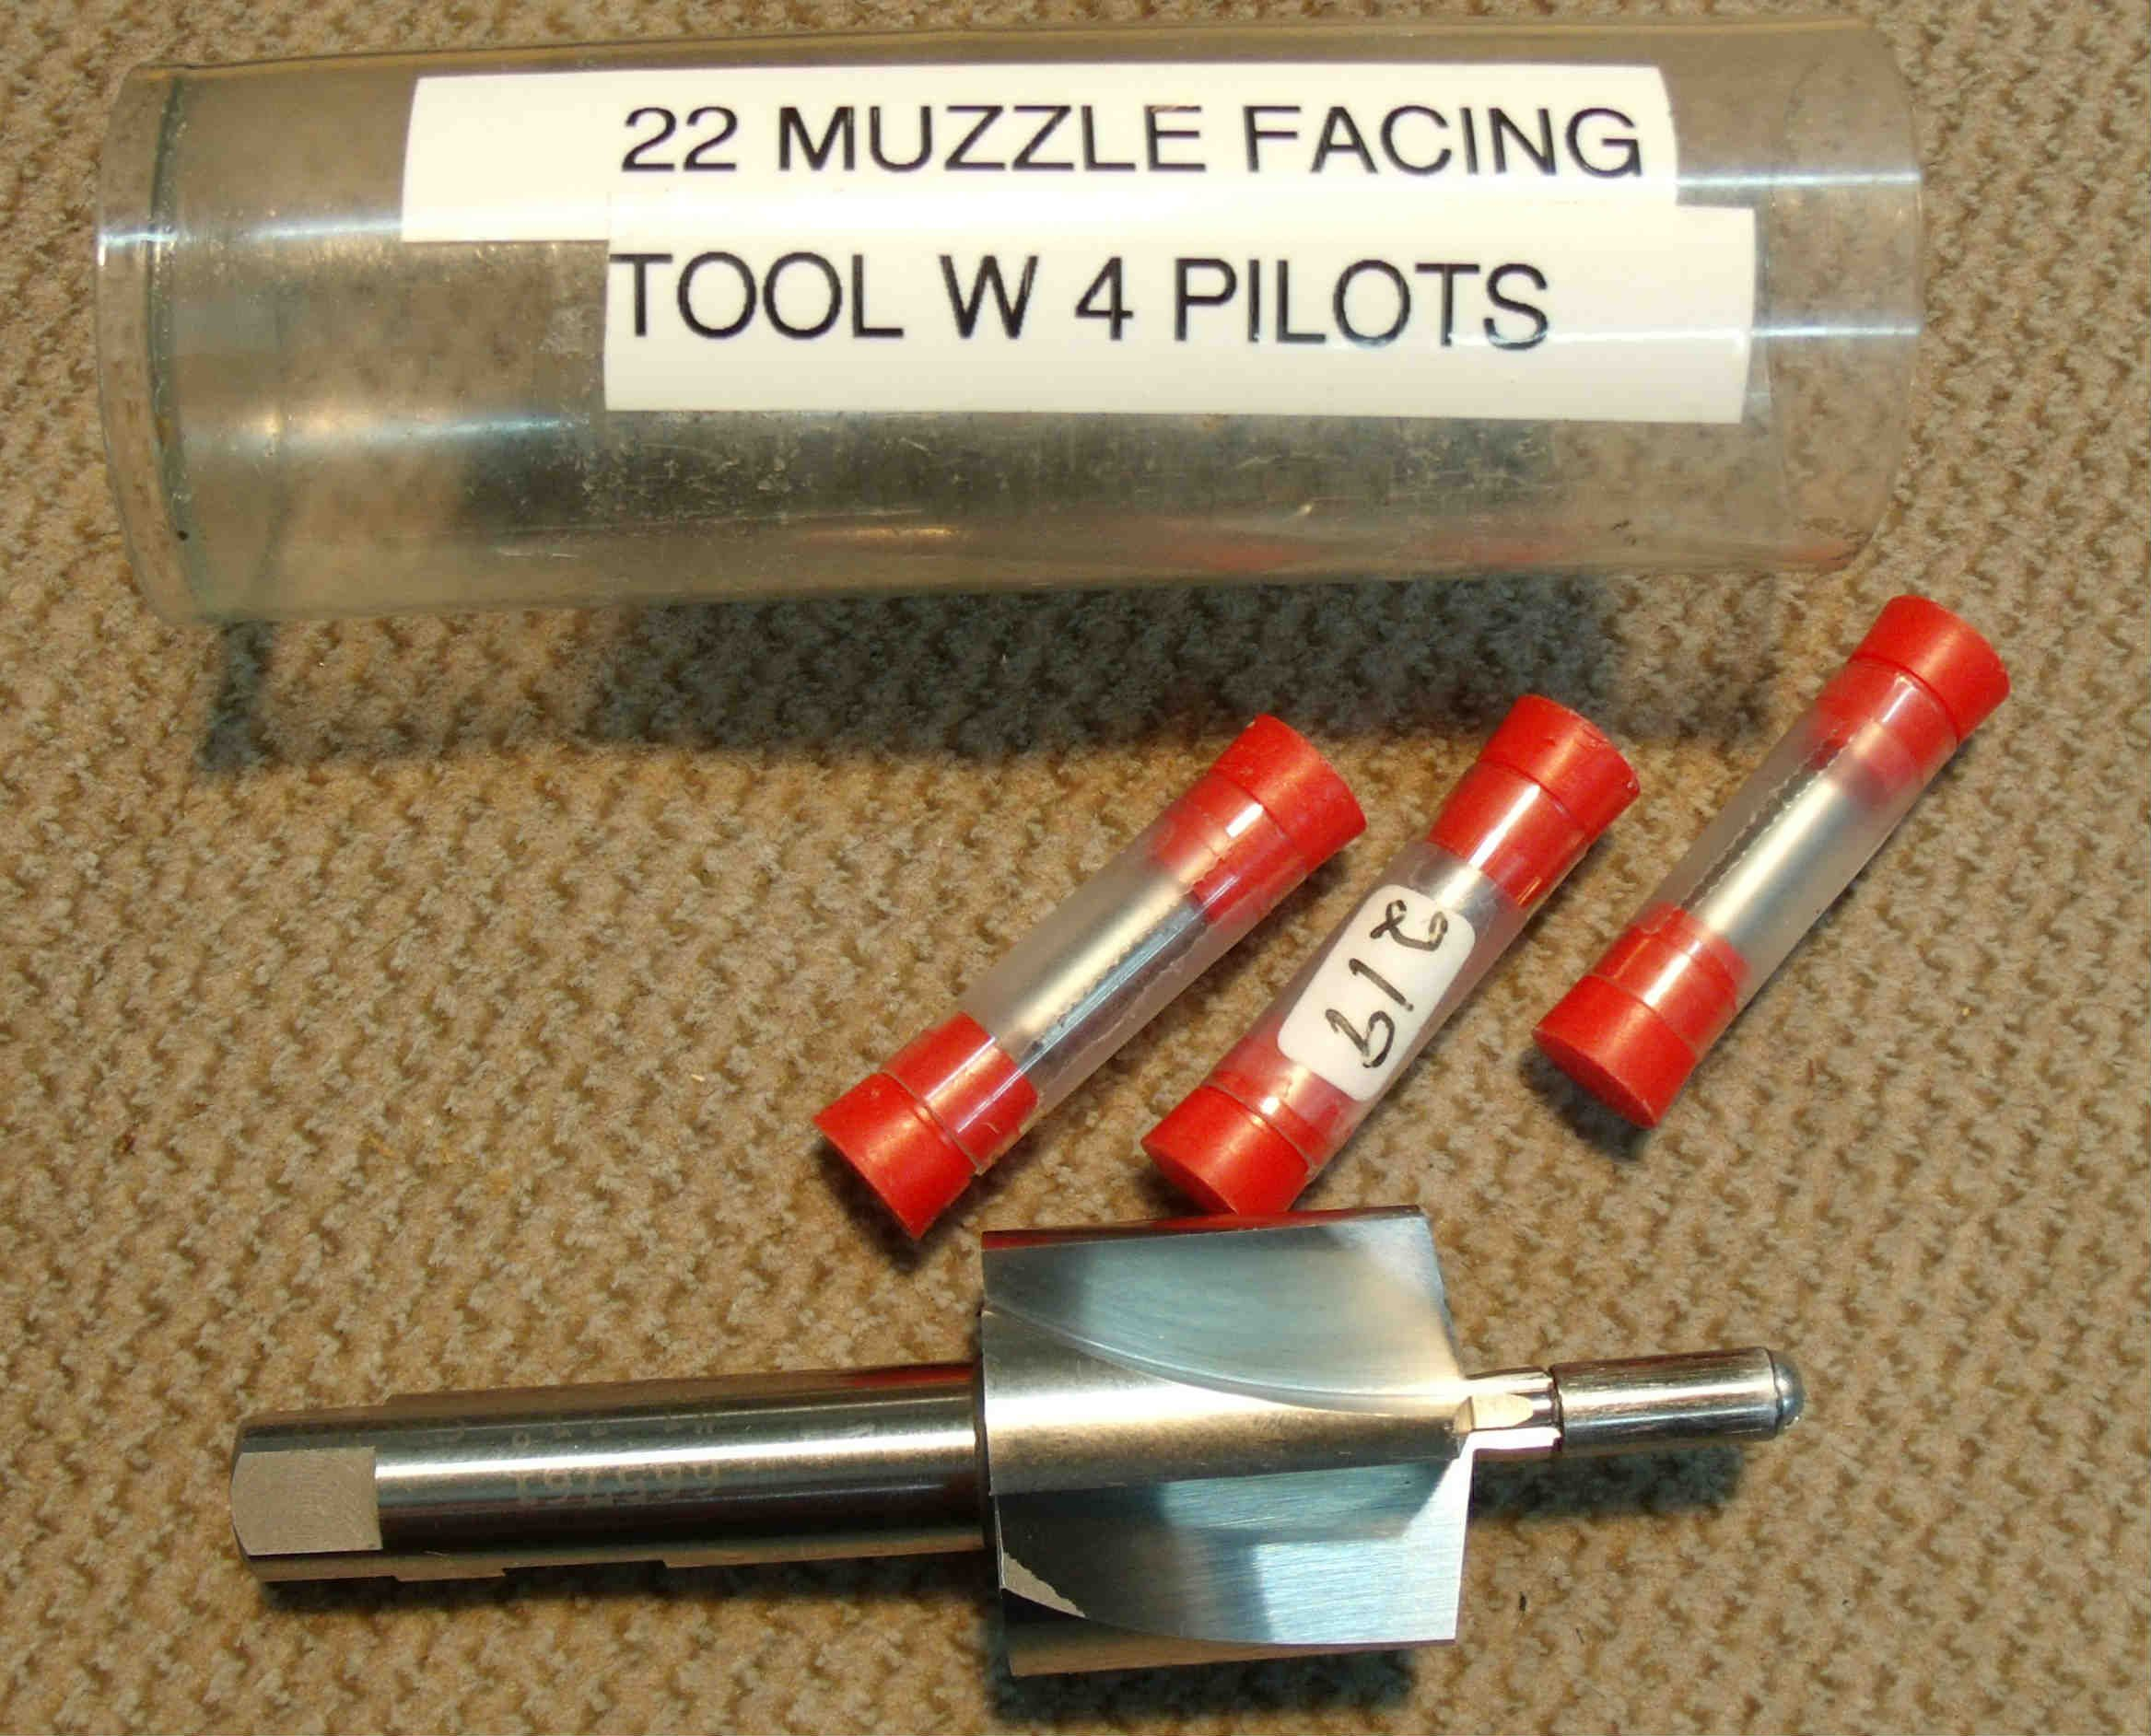 Muzzle facing tool 11 degree crown 22 and 243 4 pilots included muzzle facing tool 11 degree crown 22 and 243 4 pilots included fandeluxe Choice Image